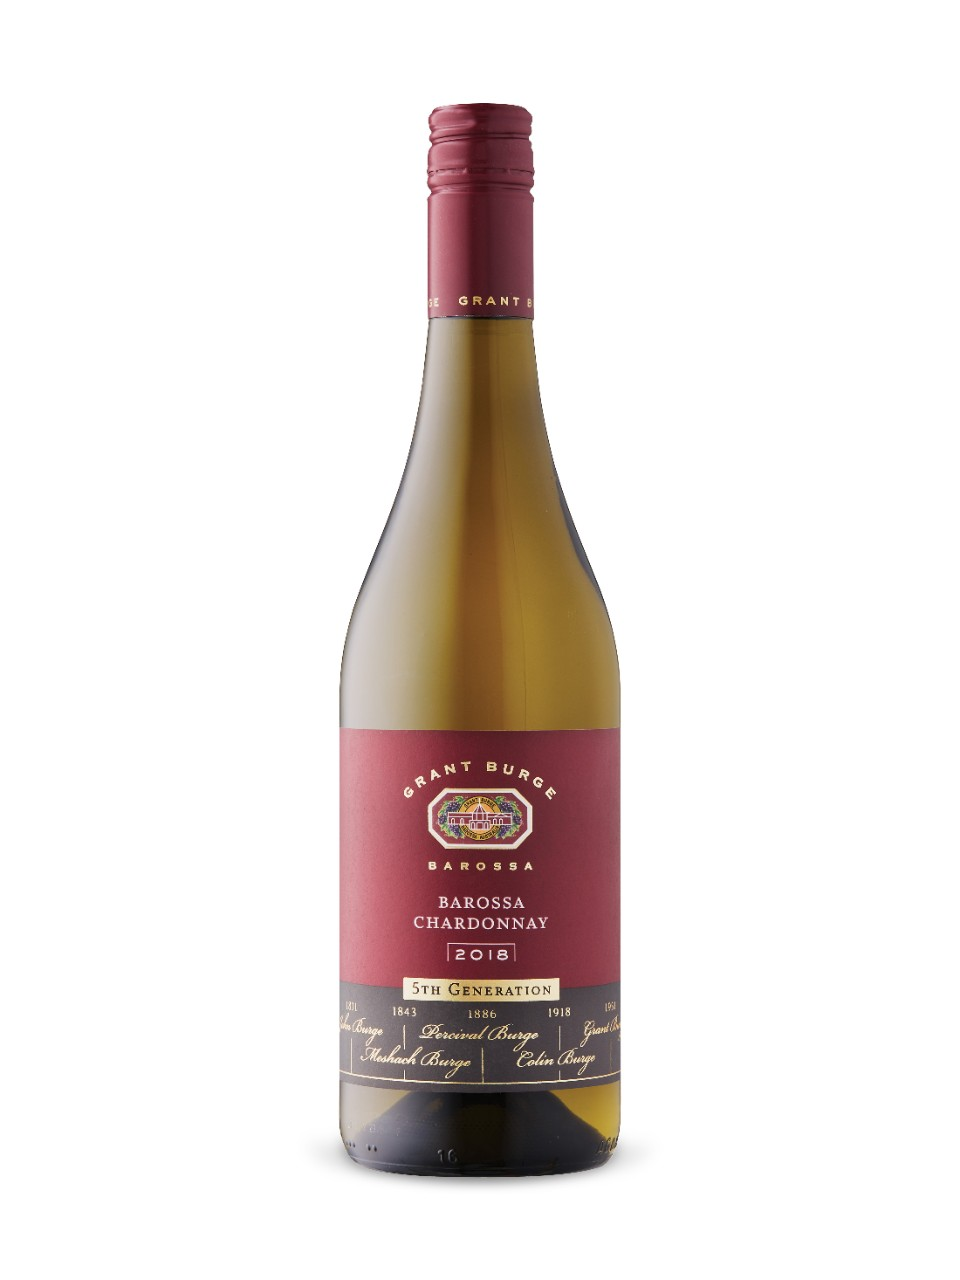 Image for Grant Burge 5th Generation Chardonnay 2018 from LCBO